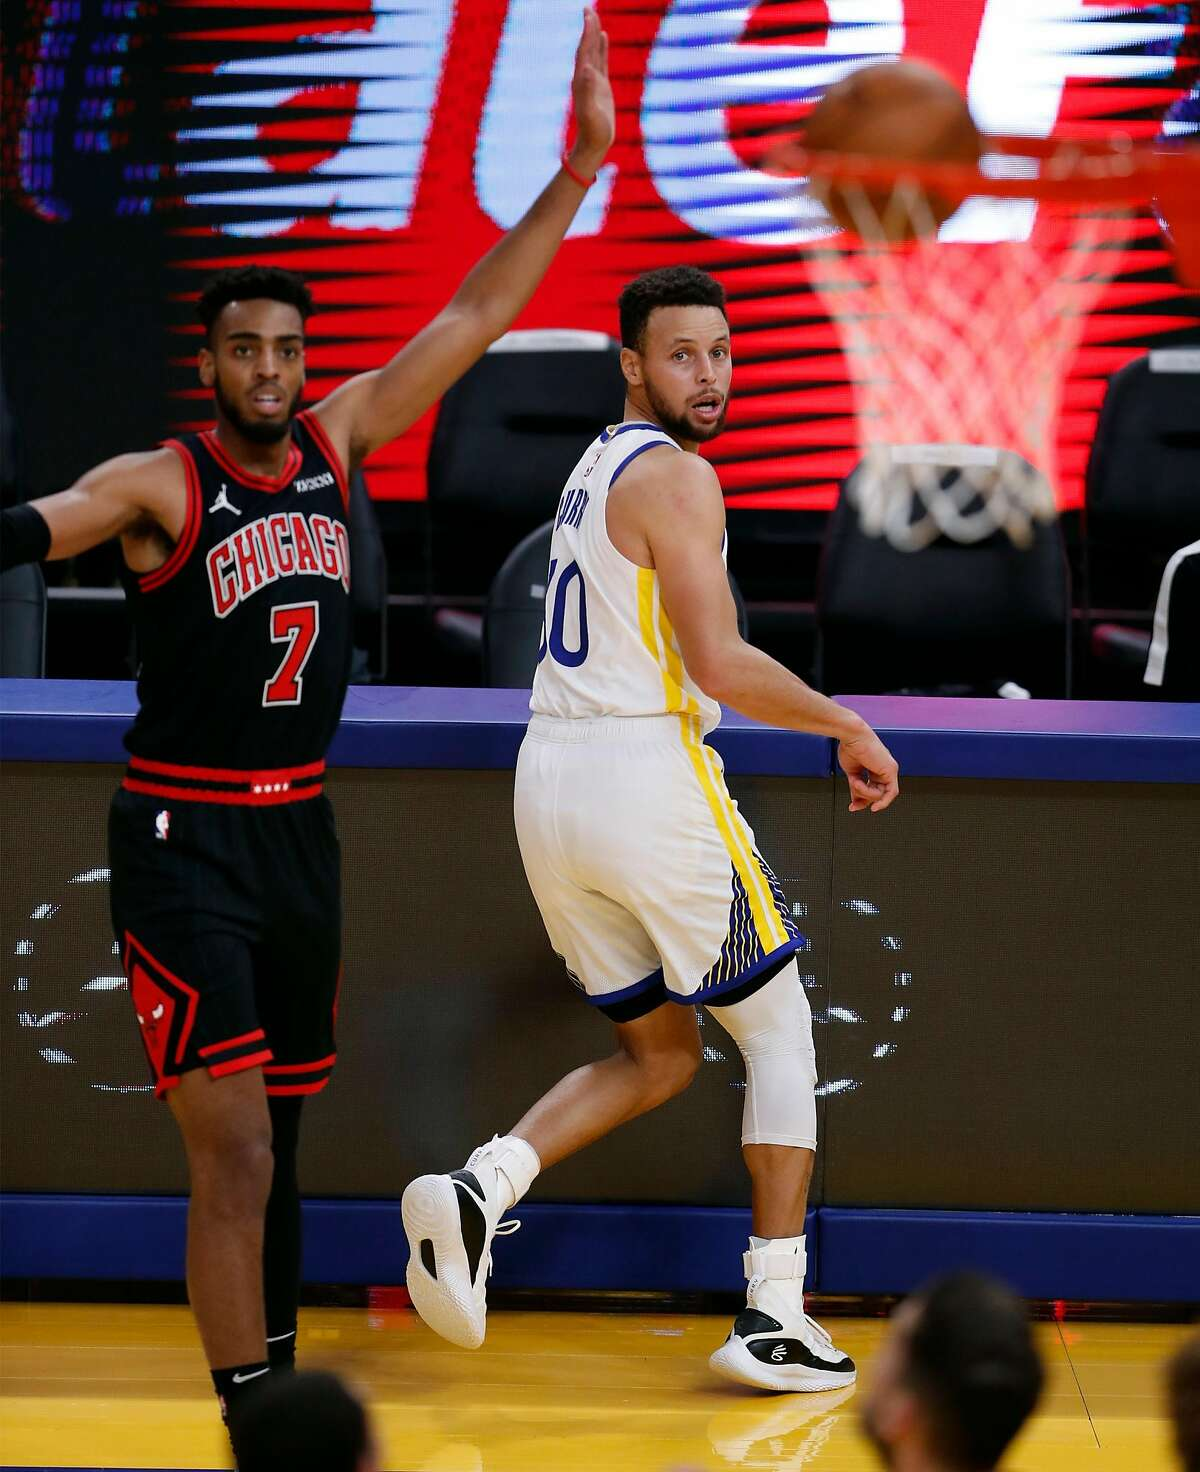 Curry and Chicago's Troy Brown Jr. watch the Warrior's 3-pointer go in at Chase Center in San Francisco.during 2nd quarter of NBA game at Chase Center in San Francisco, Calif., on Monday, March 29, 2021,